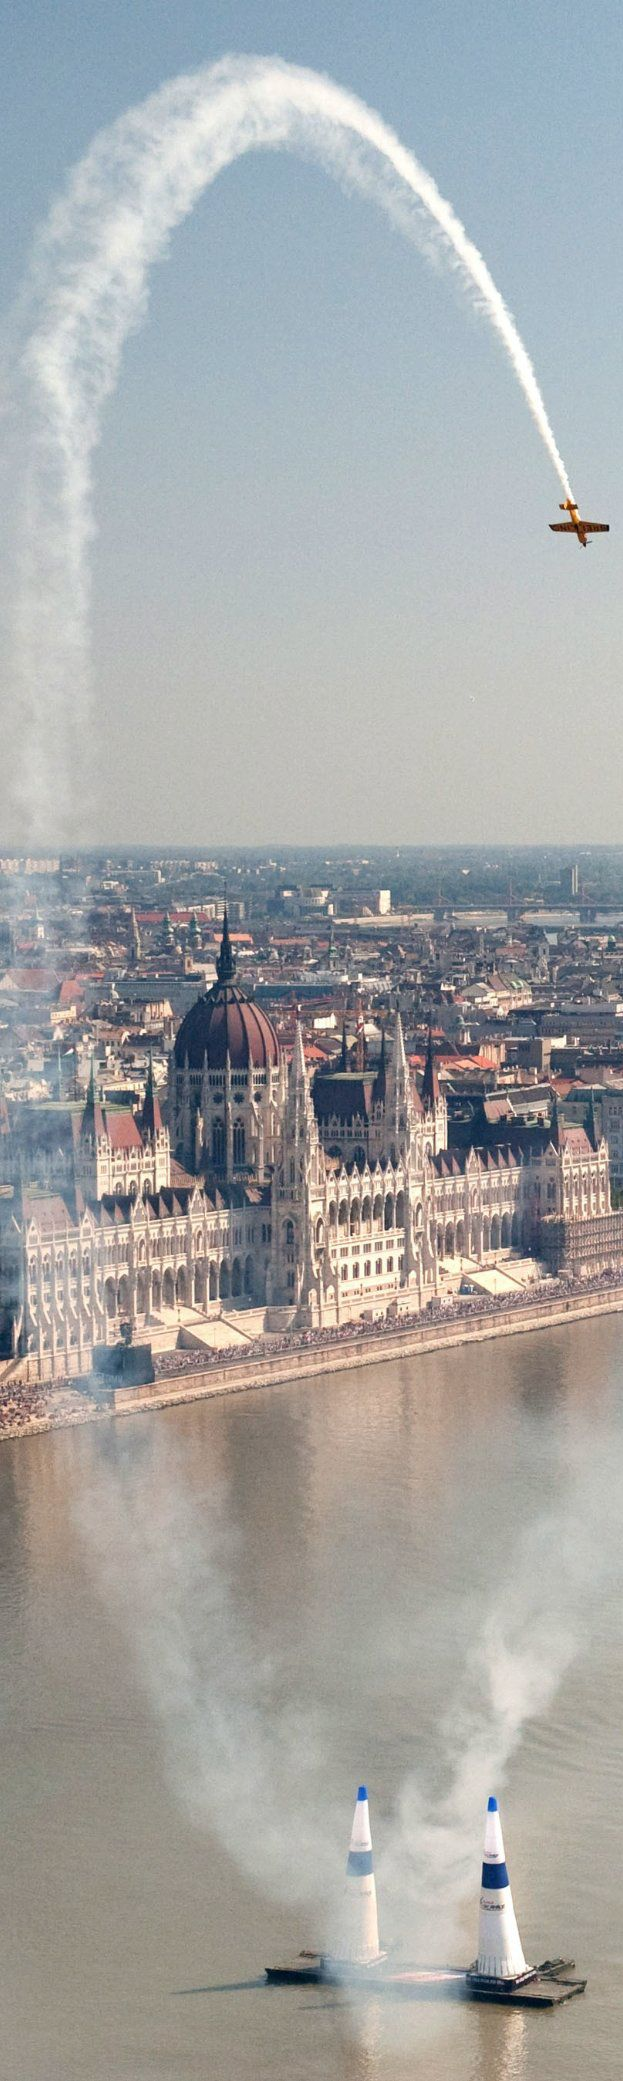 When the Red Bull air race came to Budapest in 2009. Did you know it's returning in July 2015?..#givesyouwings #airrace